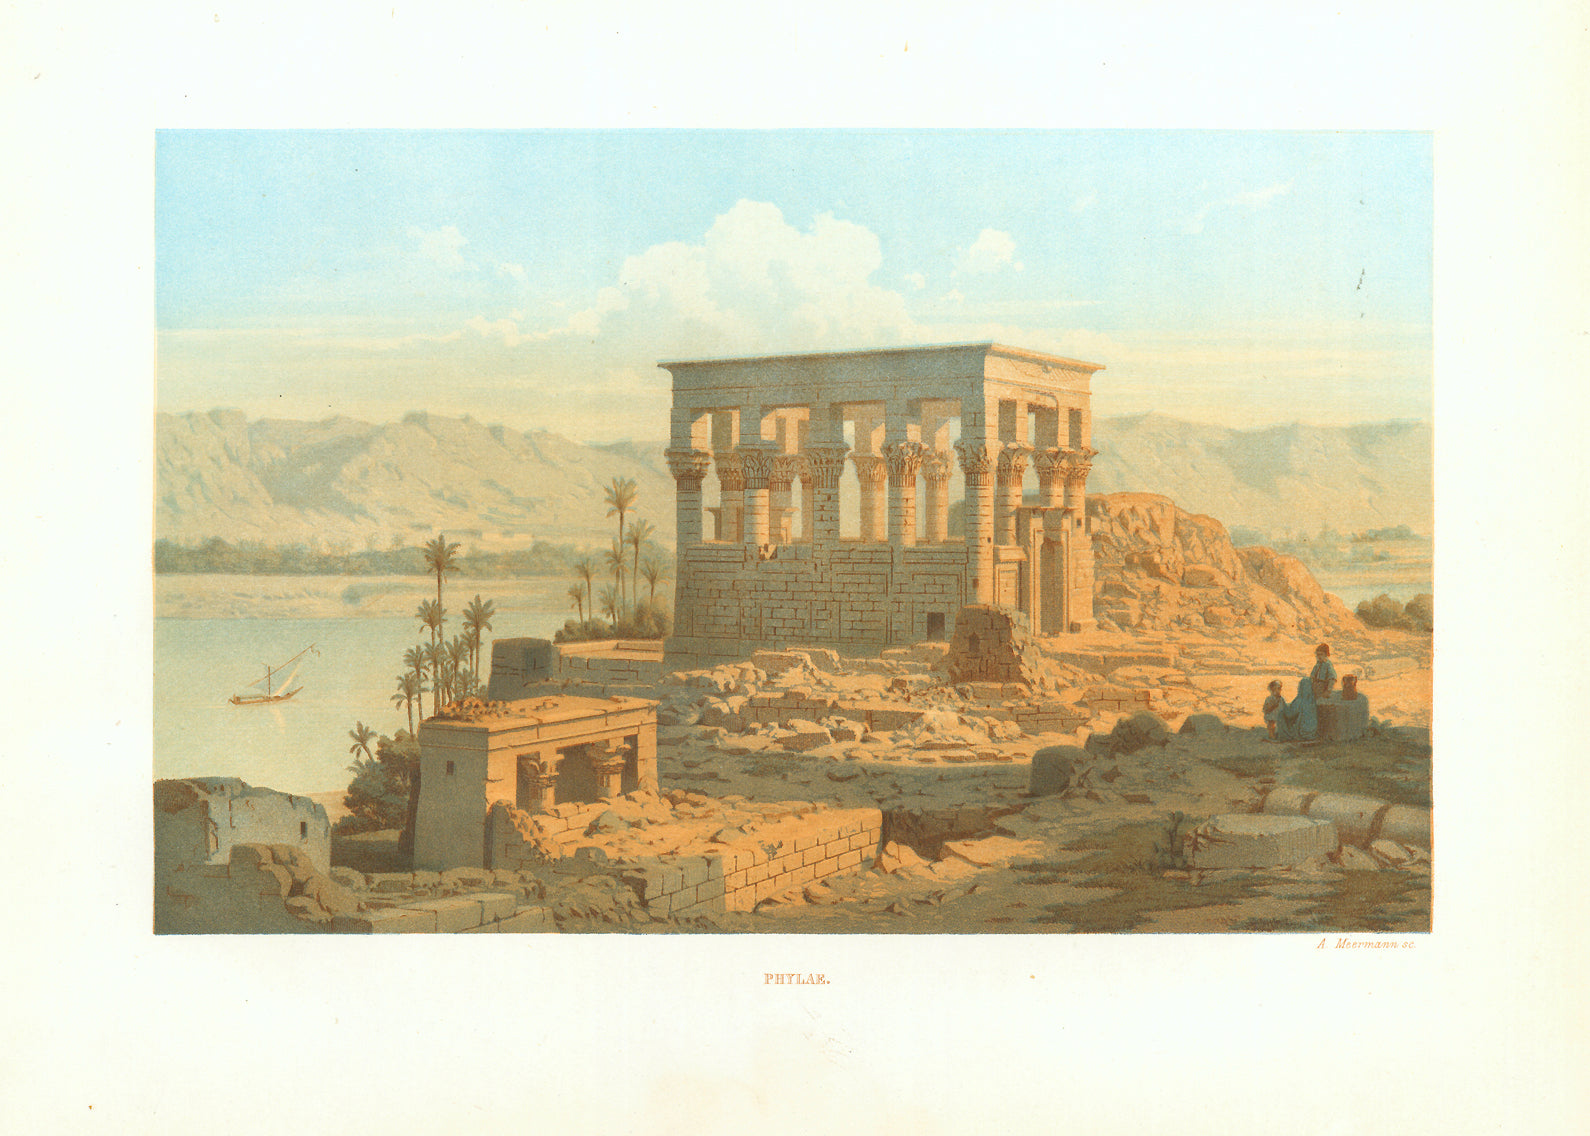 """Phylae""  Toned lithograph printed in color by A. Meermann. Published 1861.  Philae is an island in the reservoir of the Aswan Low Dam  Original antique print"